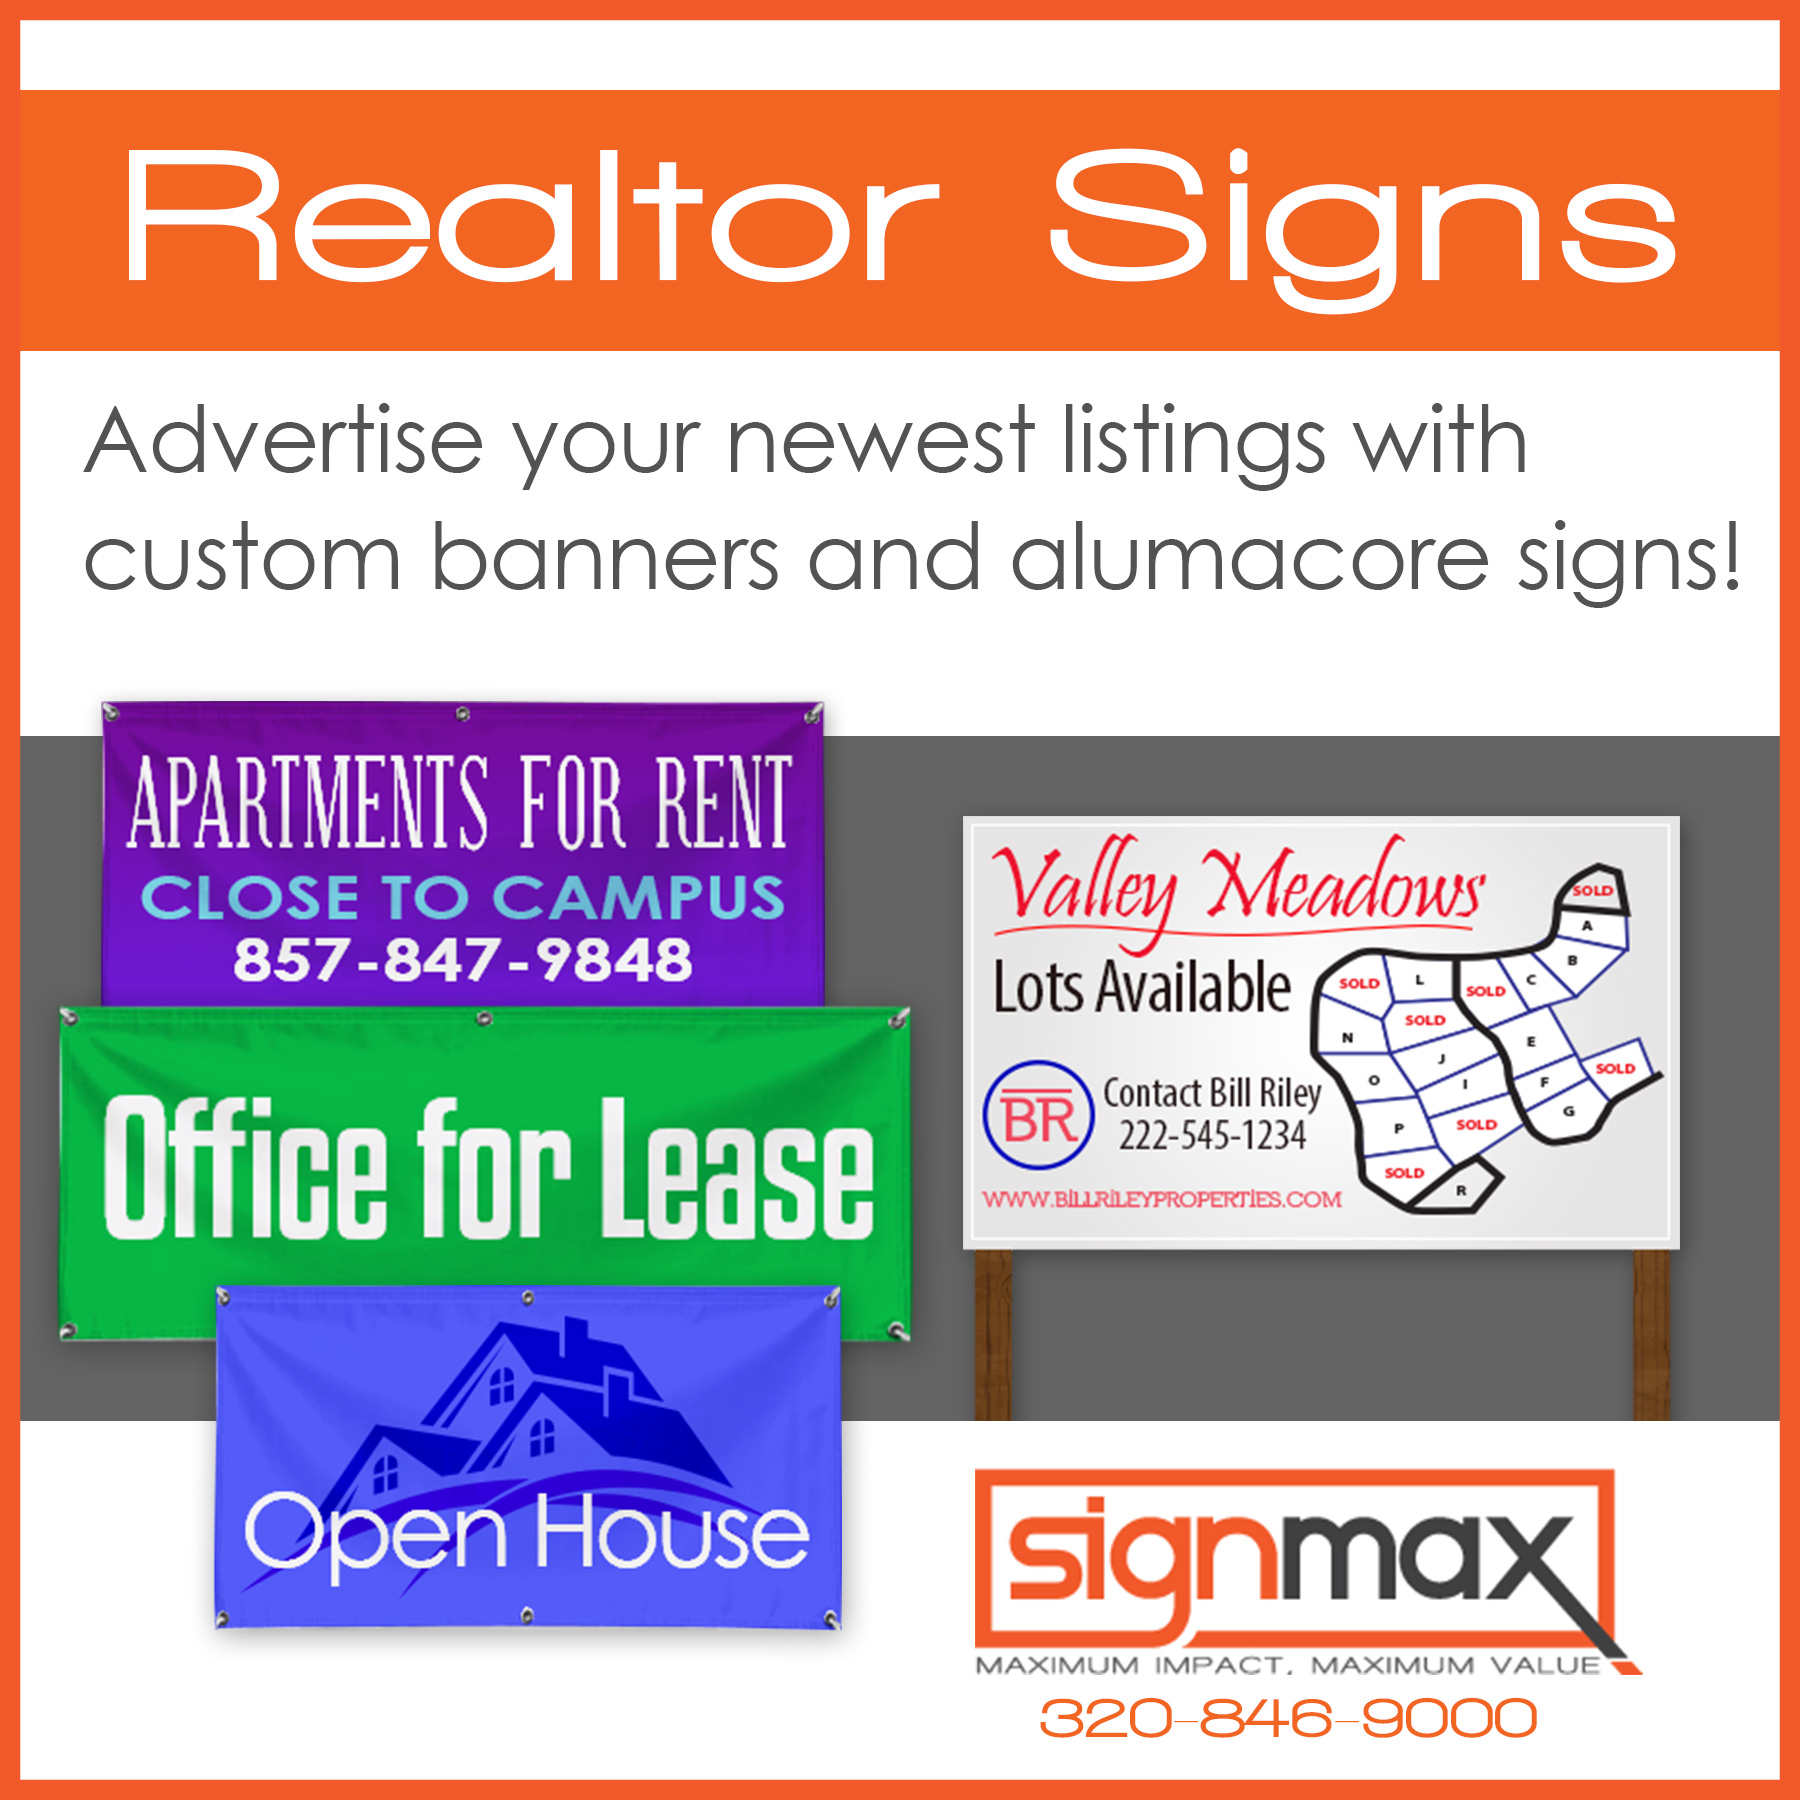 Real Estate Banners and Signs| Signmax.com